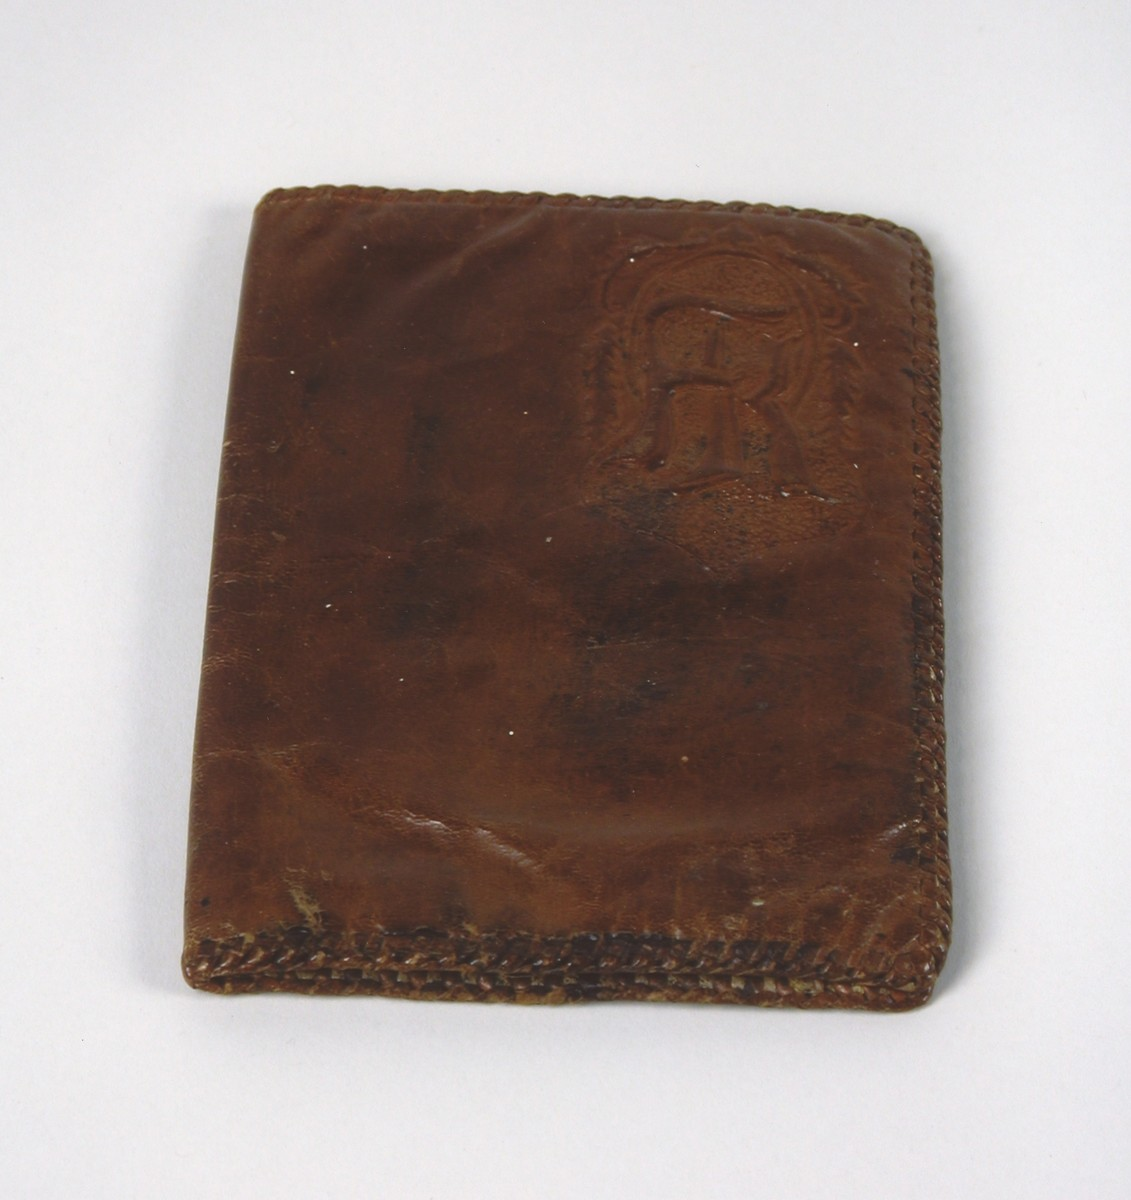 A brown, leather-tooled folio belonging to the Gondos family, who took it with them when they left Budapest aboard the Kasztner rescue train.  Anna Ilona Gondas made this and other hand-tooled leather objects during the war to supplement the family income while her husband was serving in the Hungarian Labor Service.  The monogram suggests that this was a custom-made item that the owner never took possession of.